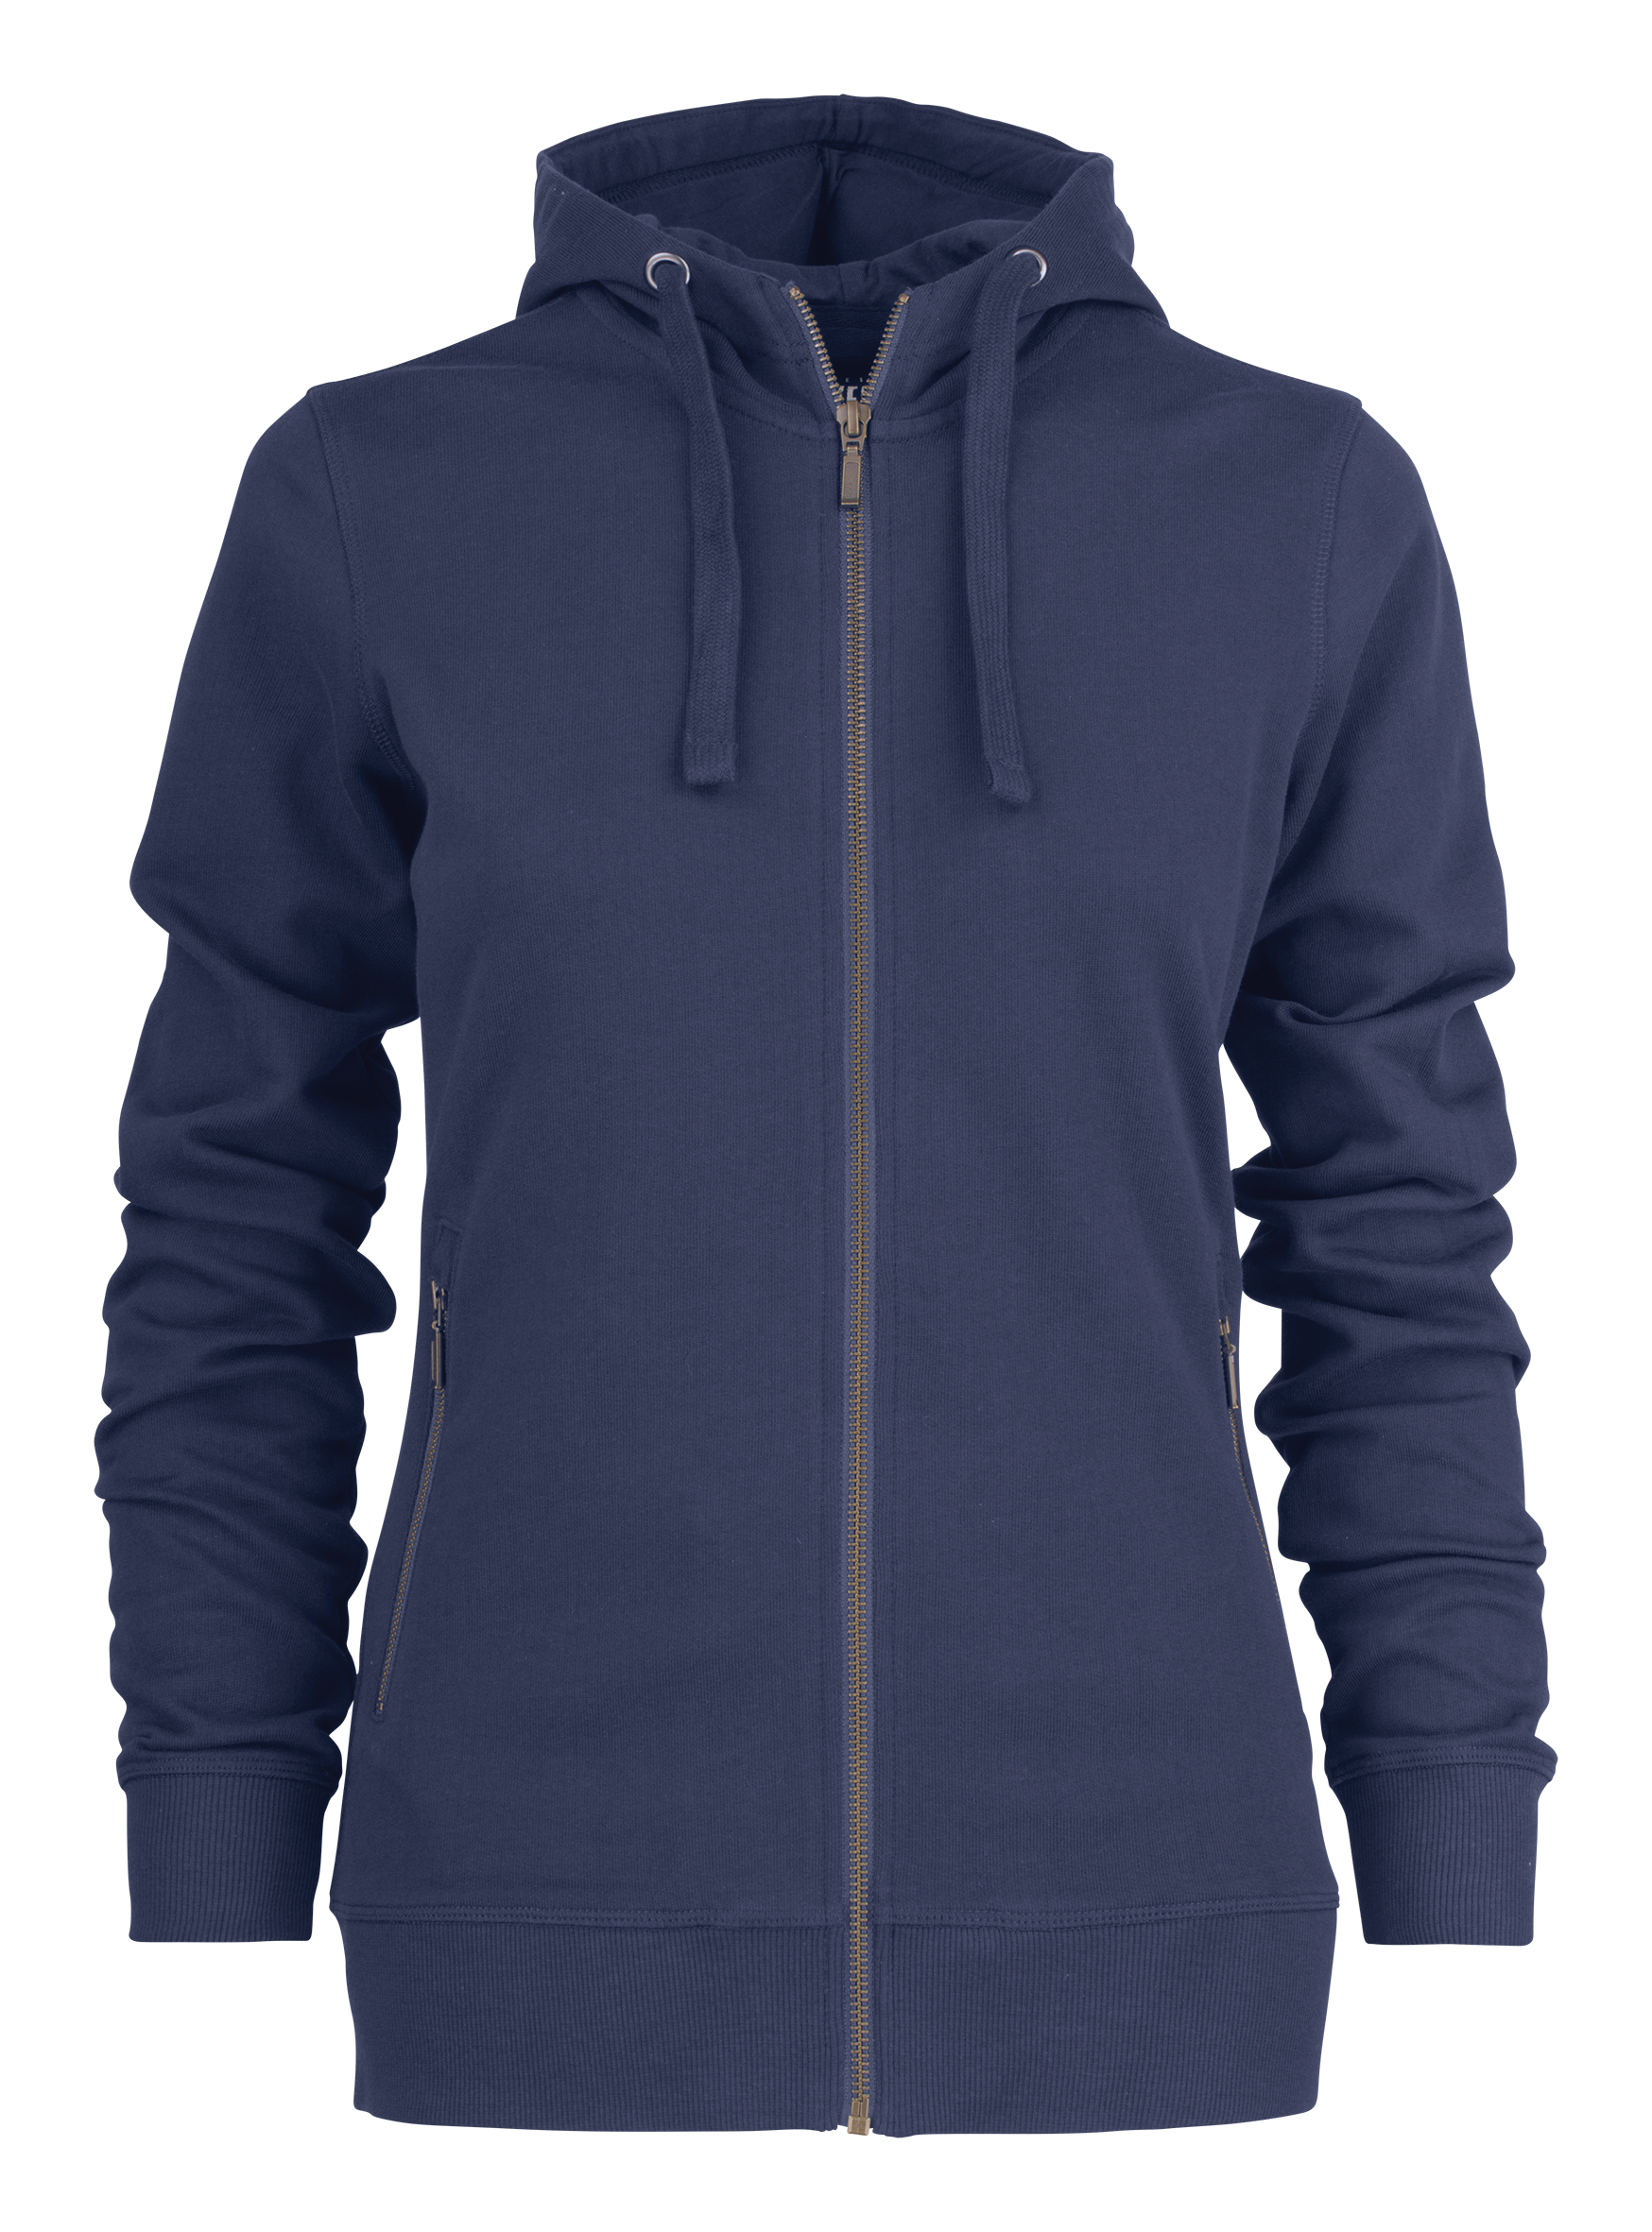 Ladies Duke Hoodie in Navy